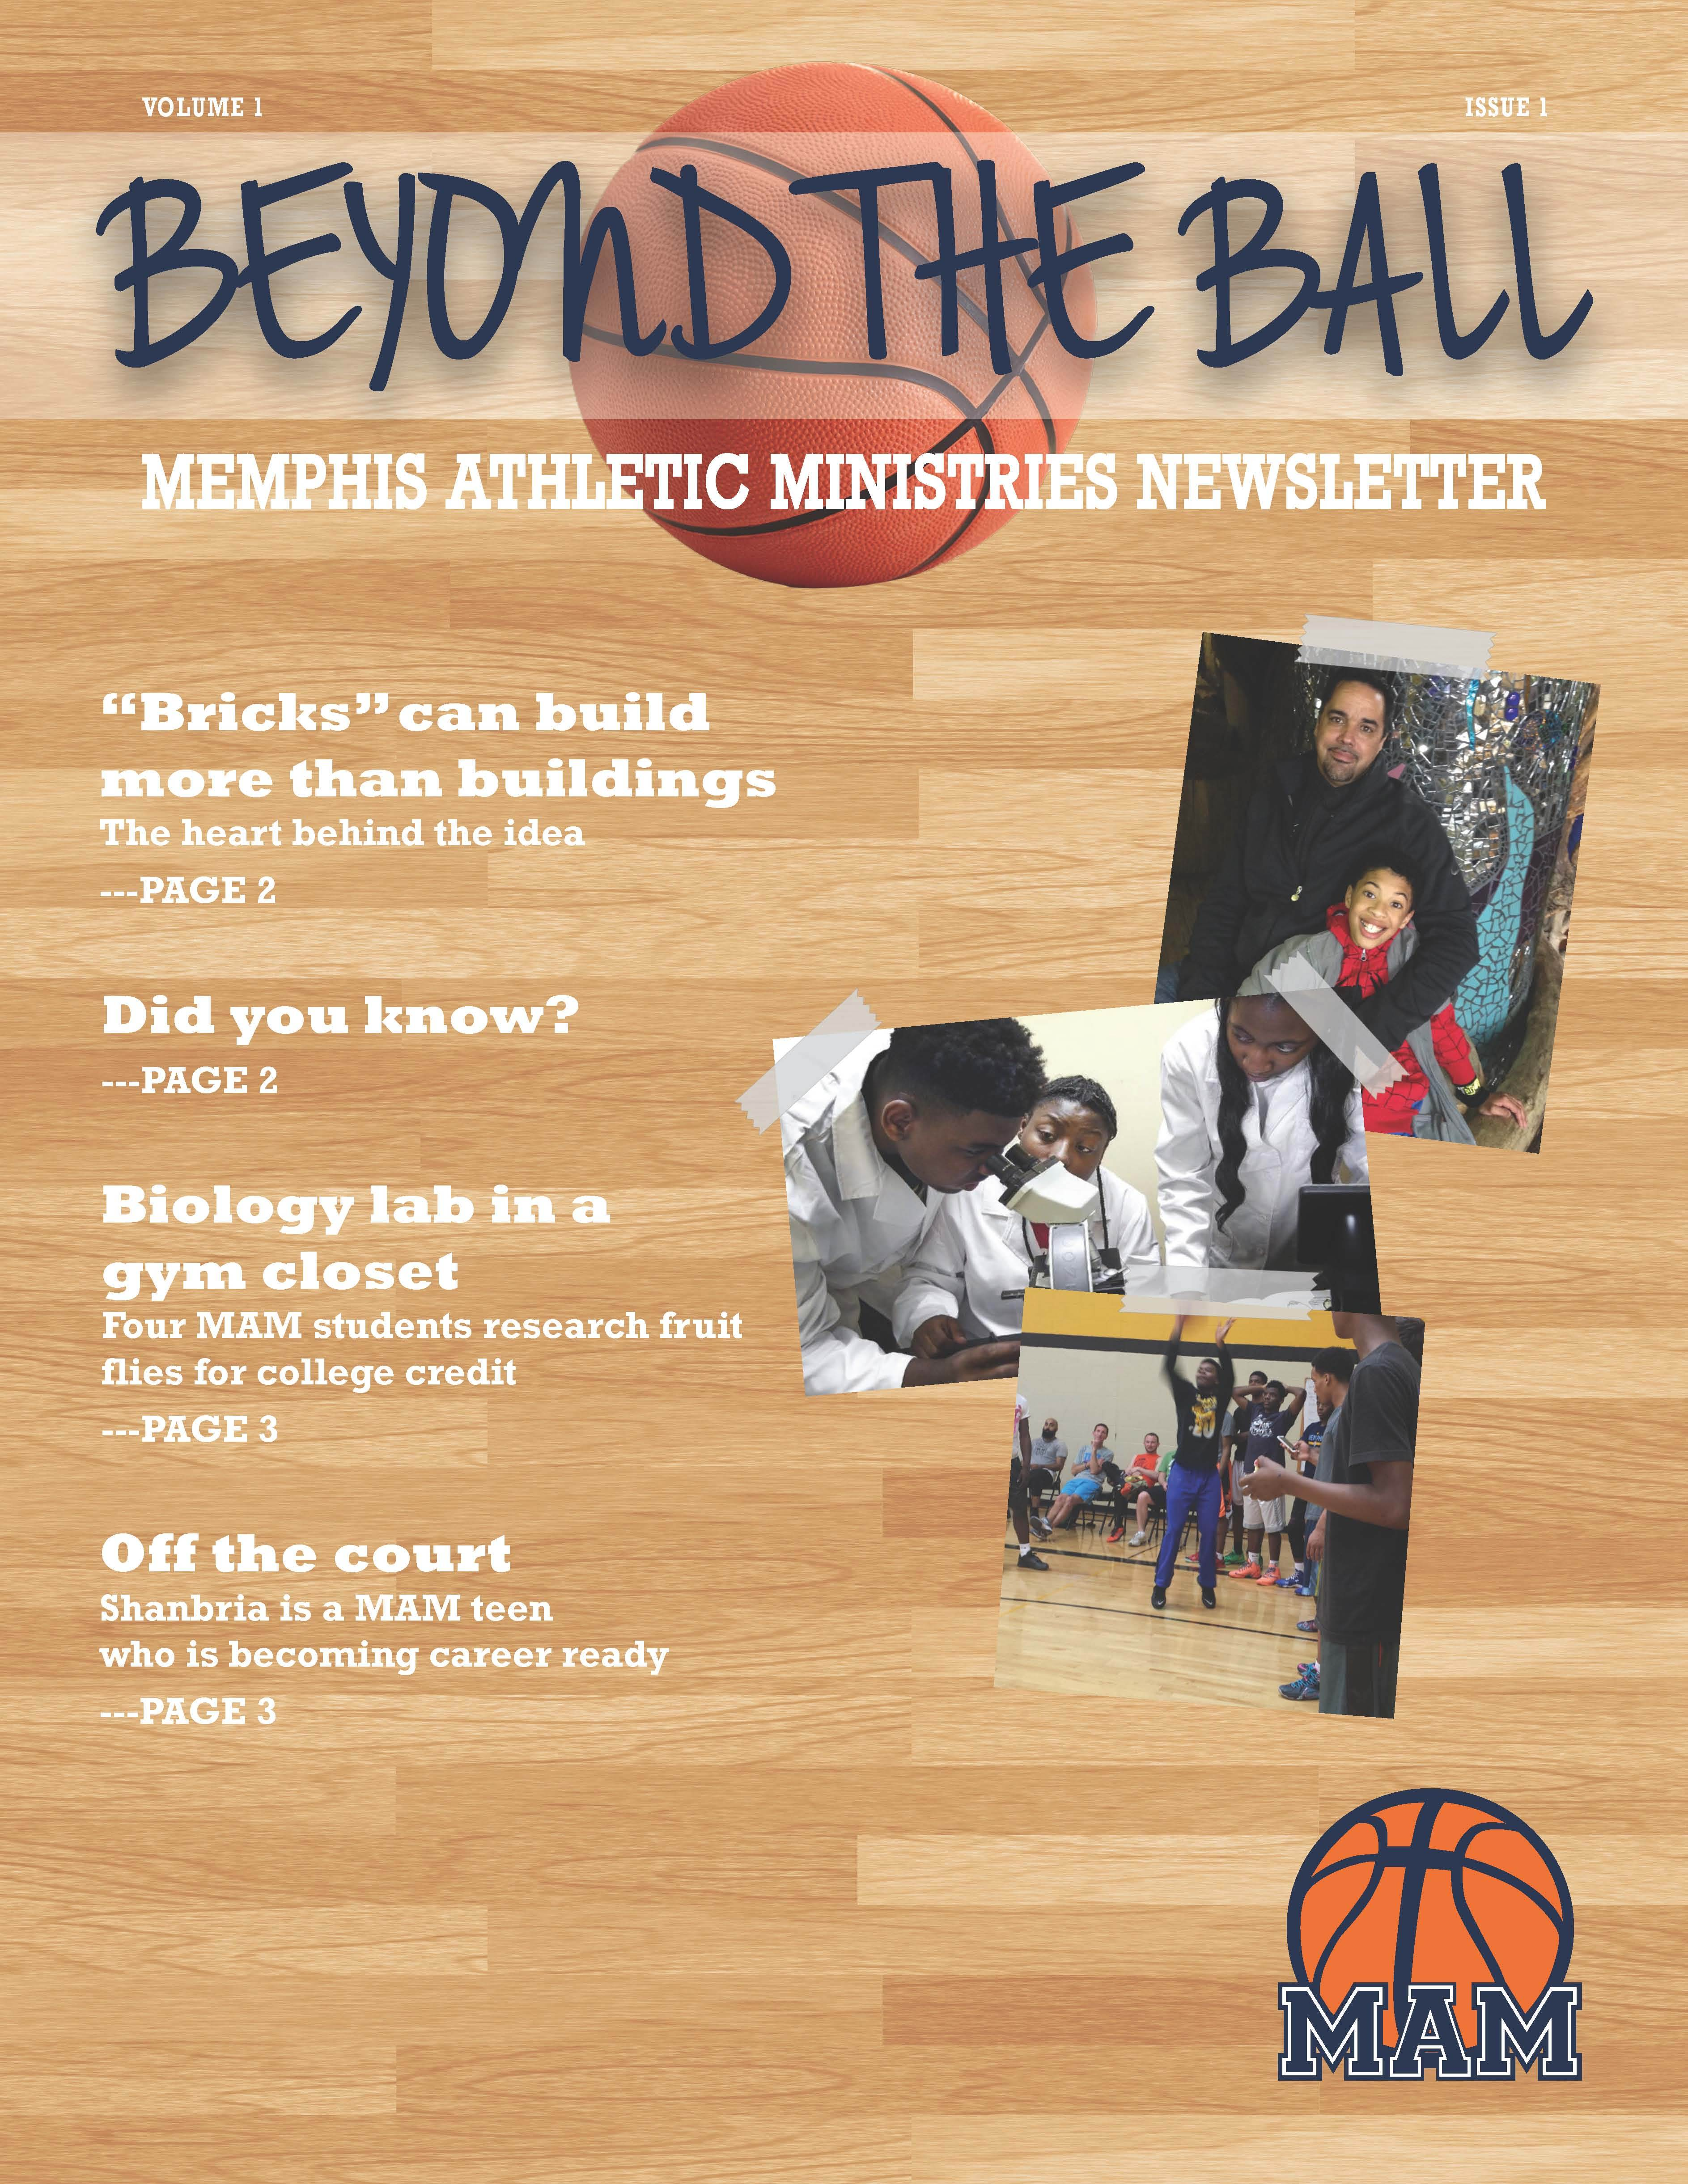 Beyond The Ball, Vol. I, Issue I